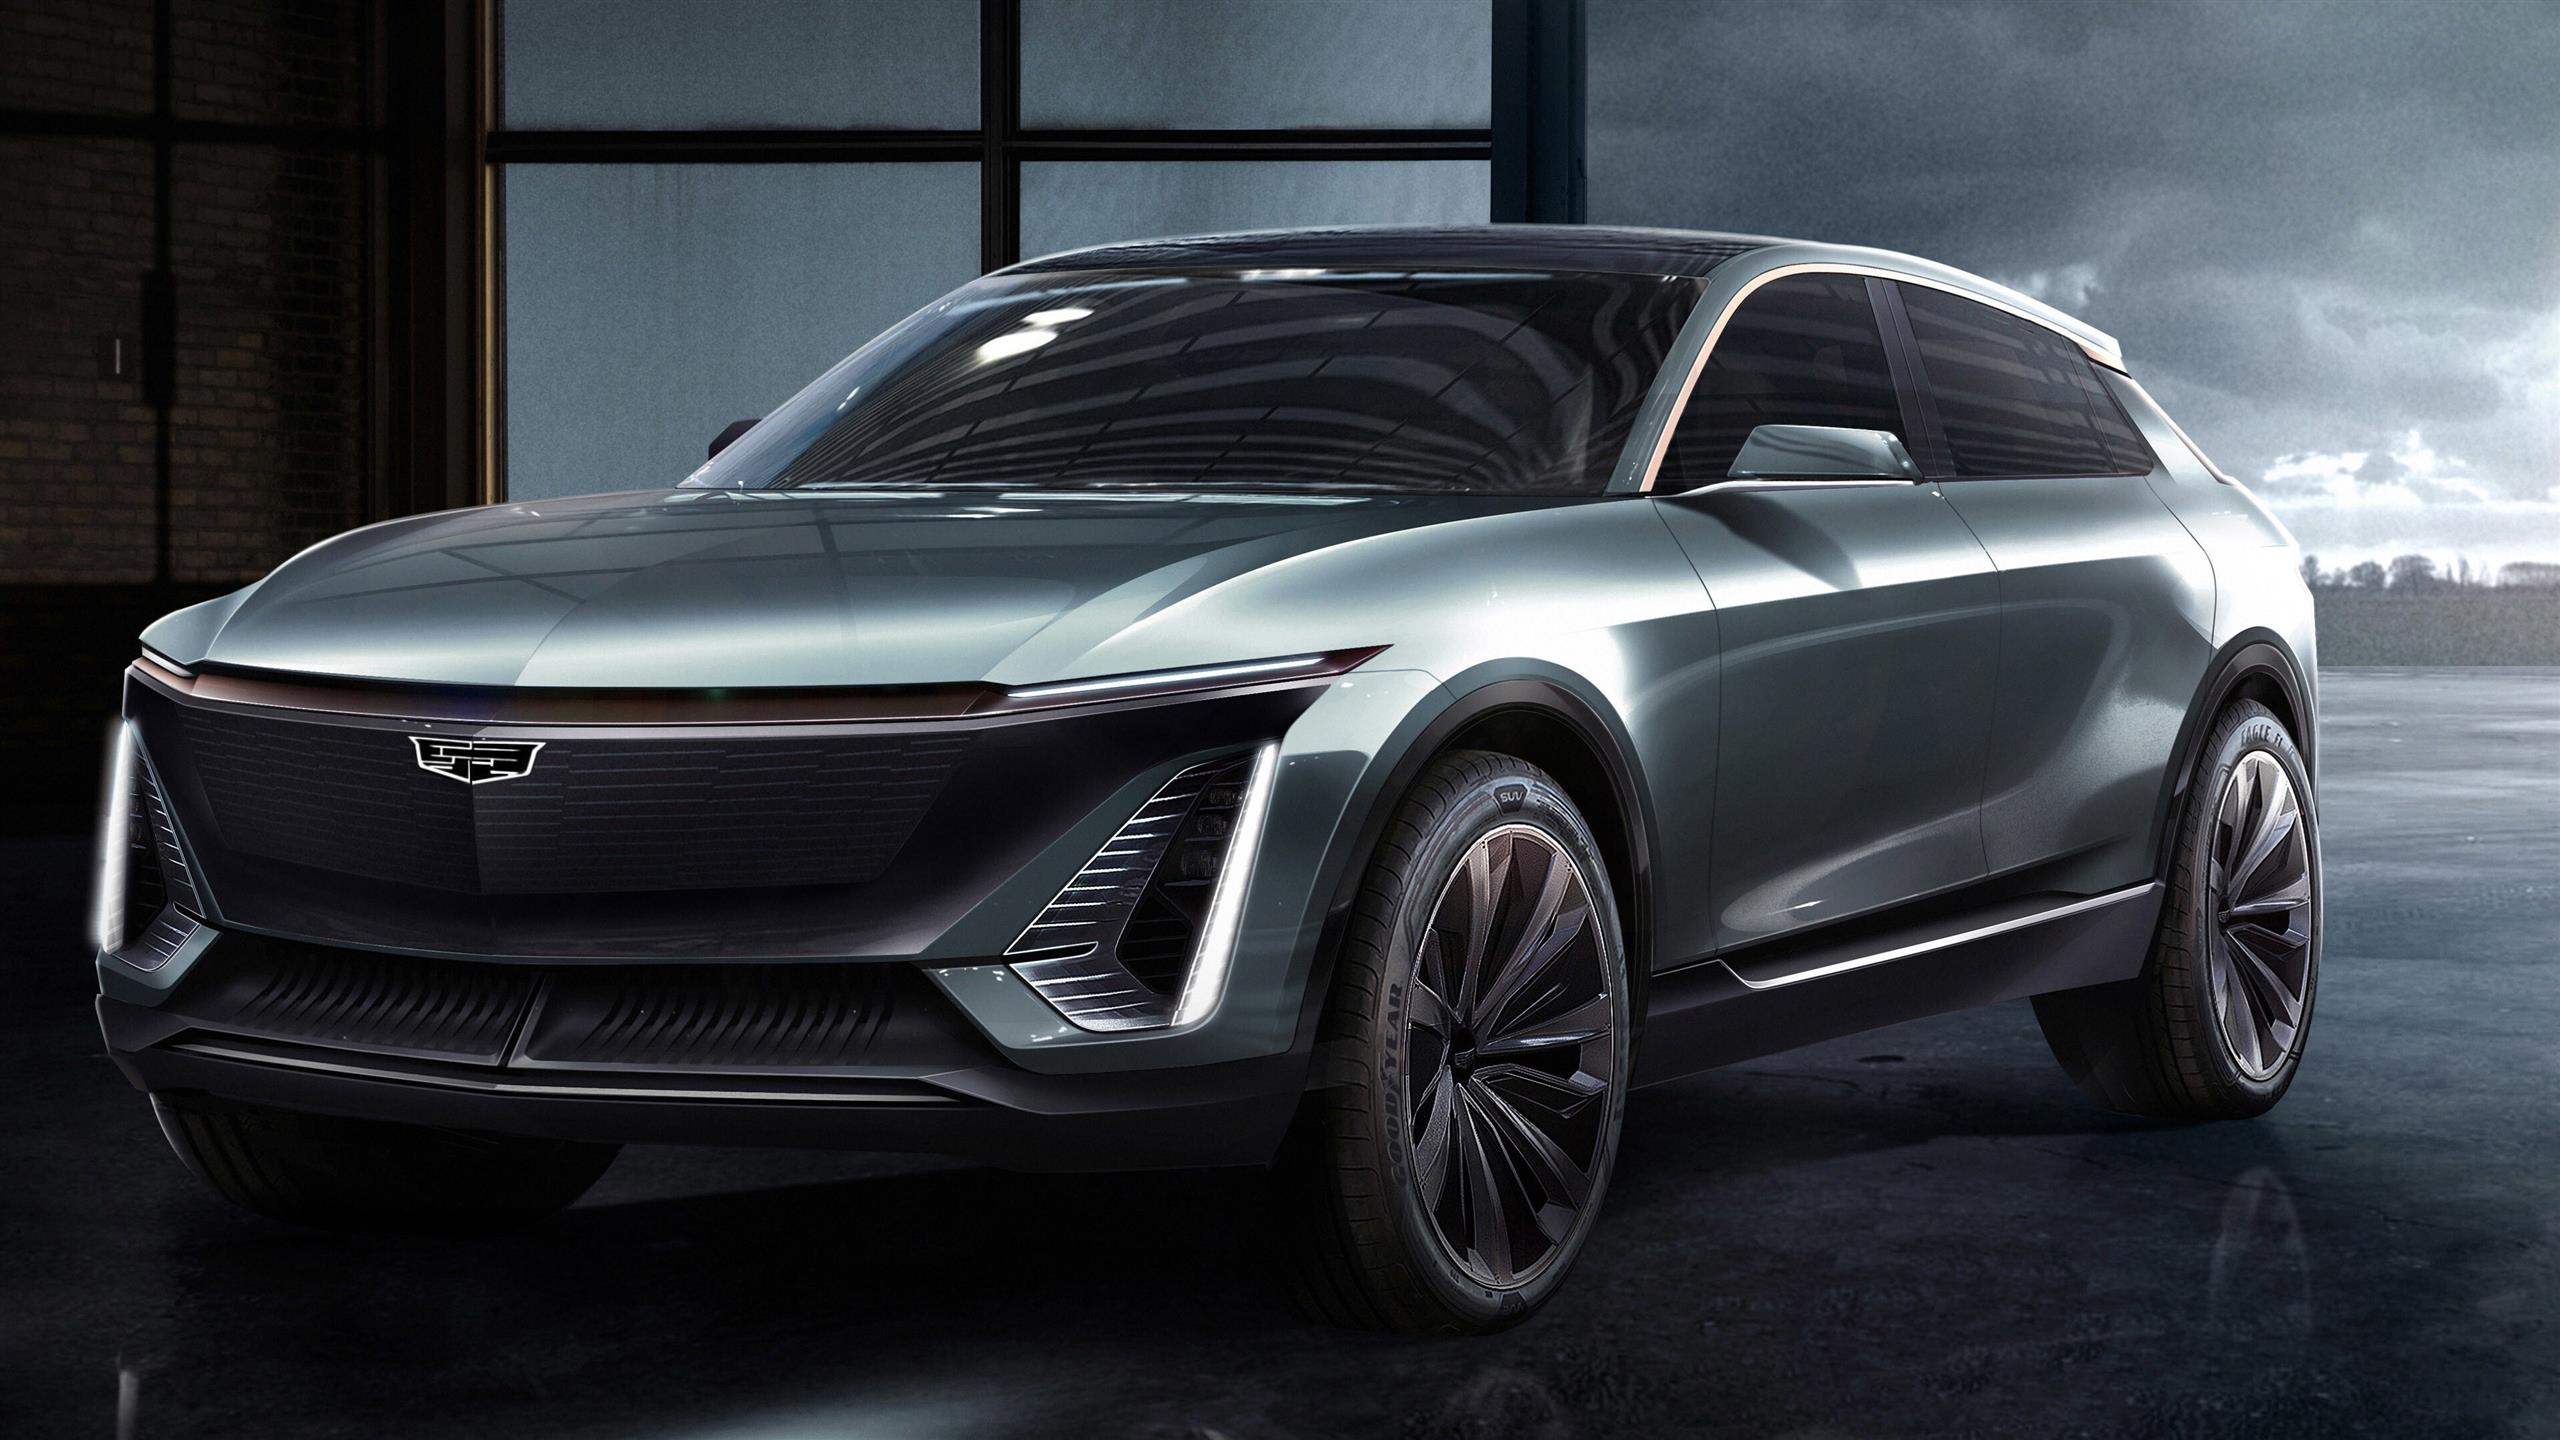 2560x1440 2019 Cadillac EV Concept 5K Car Wallpaper